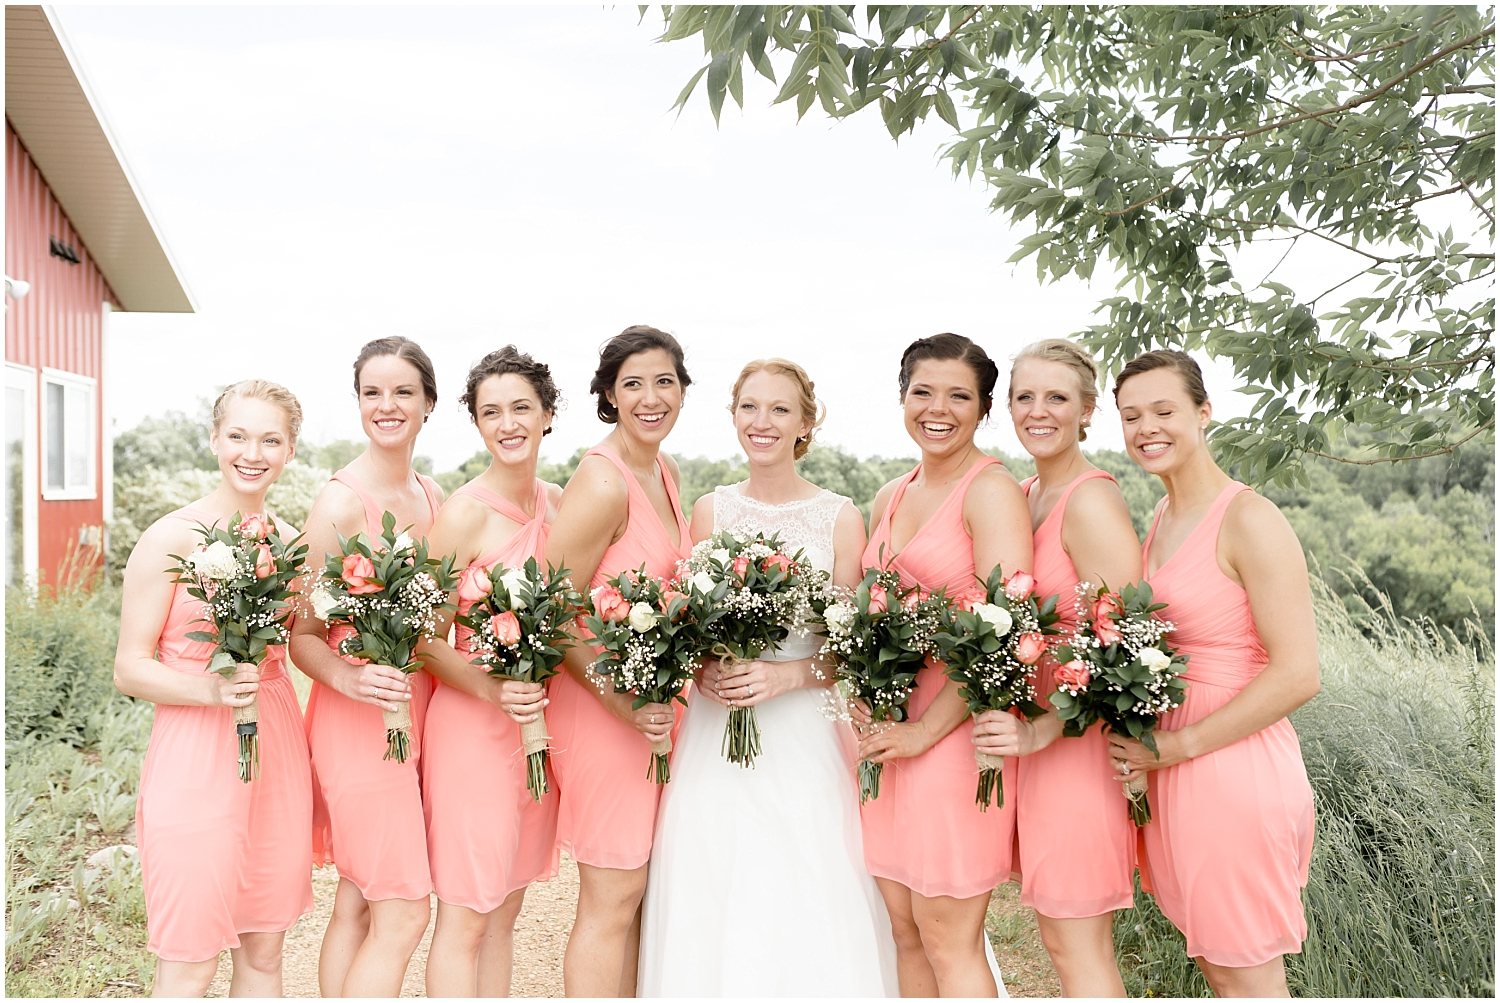 Chaska Wedding Venue MN. Bride with her bridesmaids before the wedding in MN